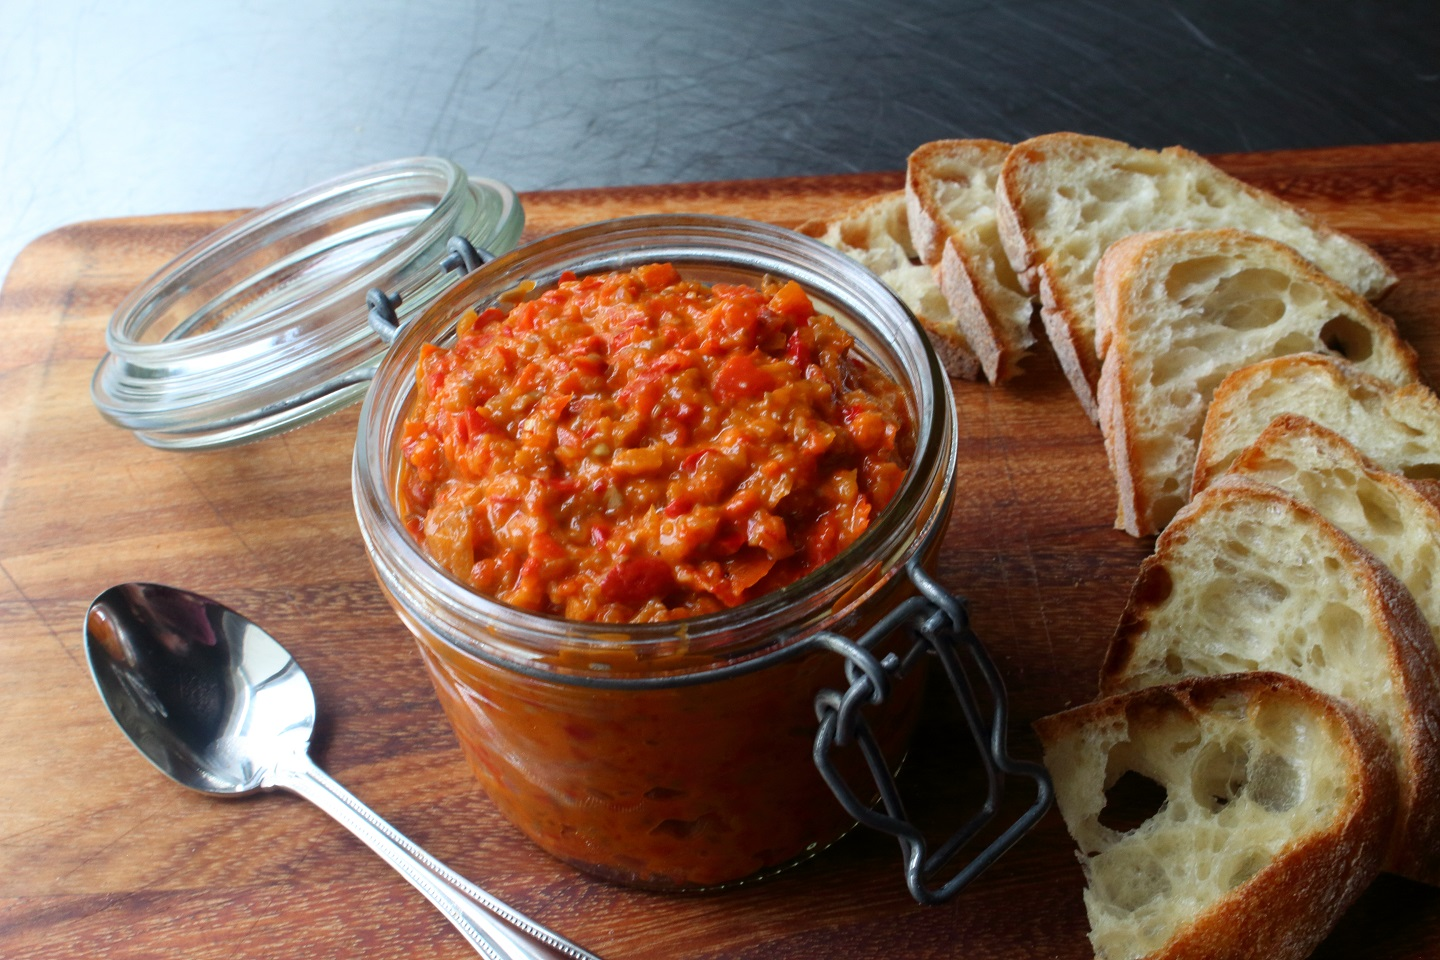 Bomba Calabrese (Spicy Calabrian Pepper Spread)